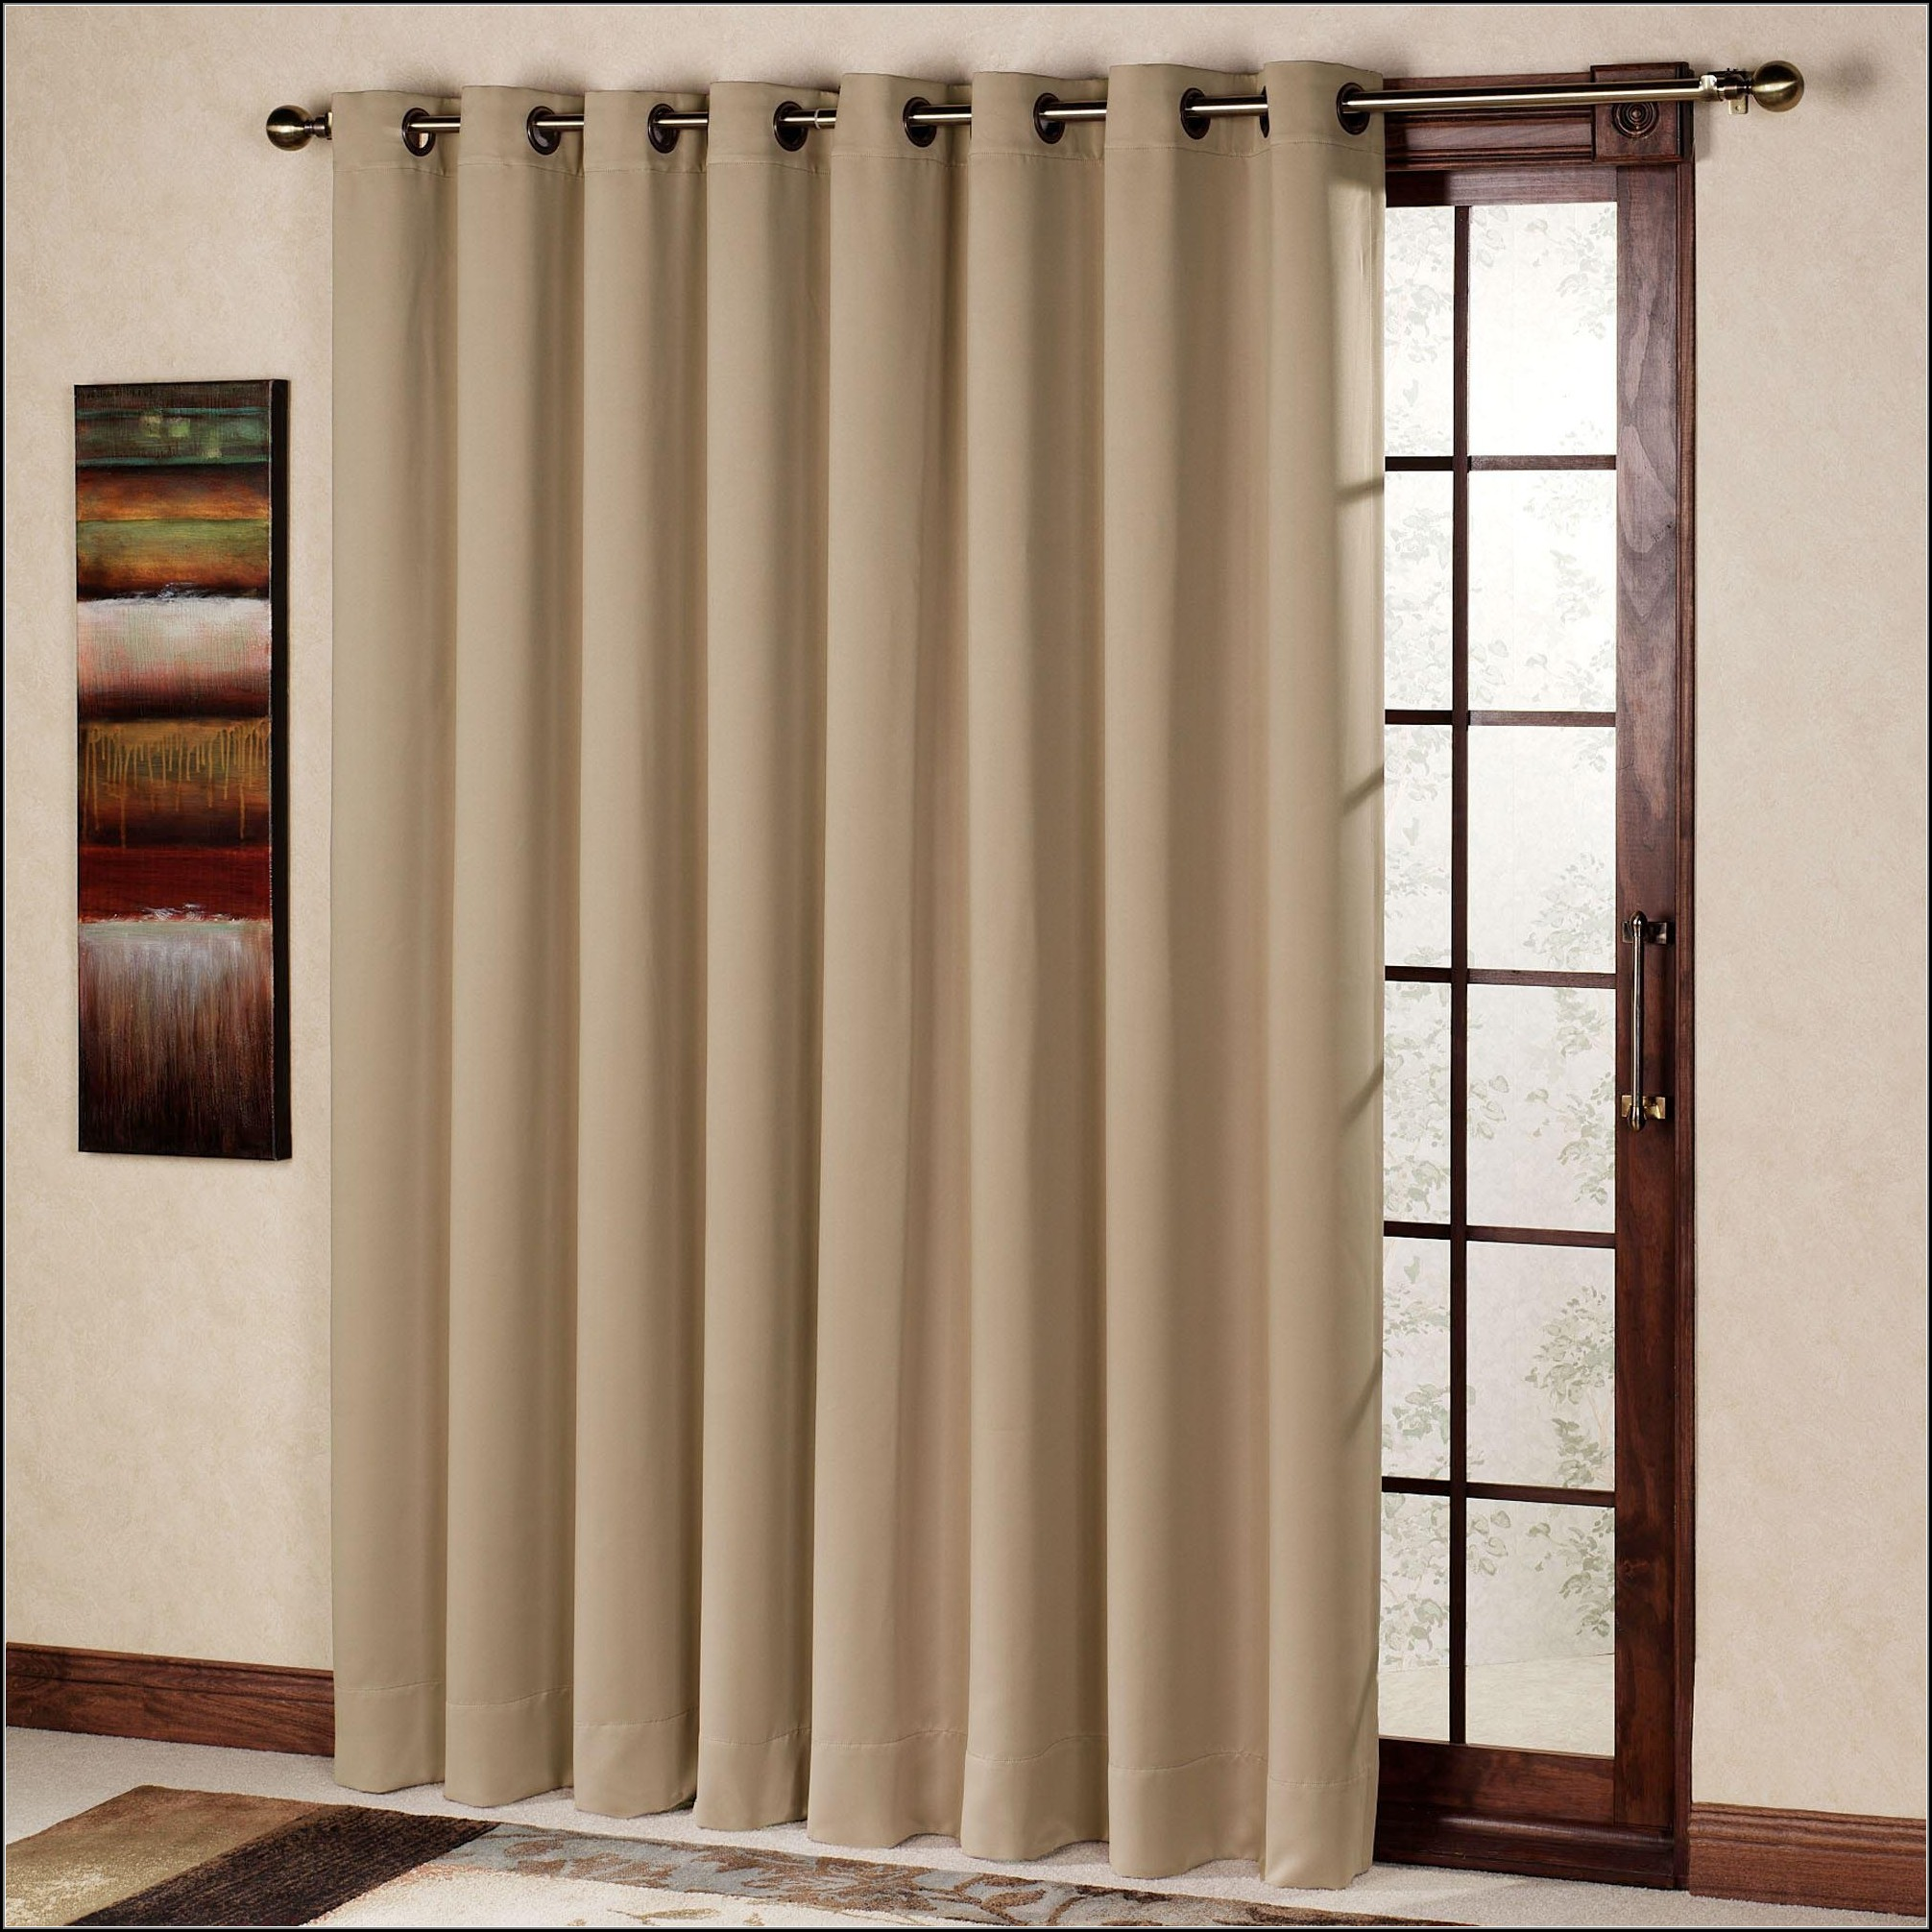 Patio Door Blackout Curtain Panel